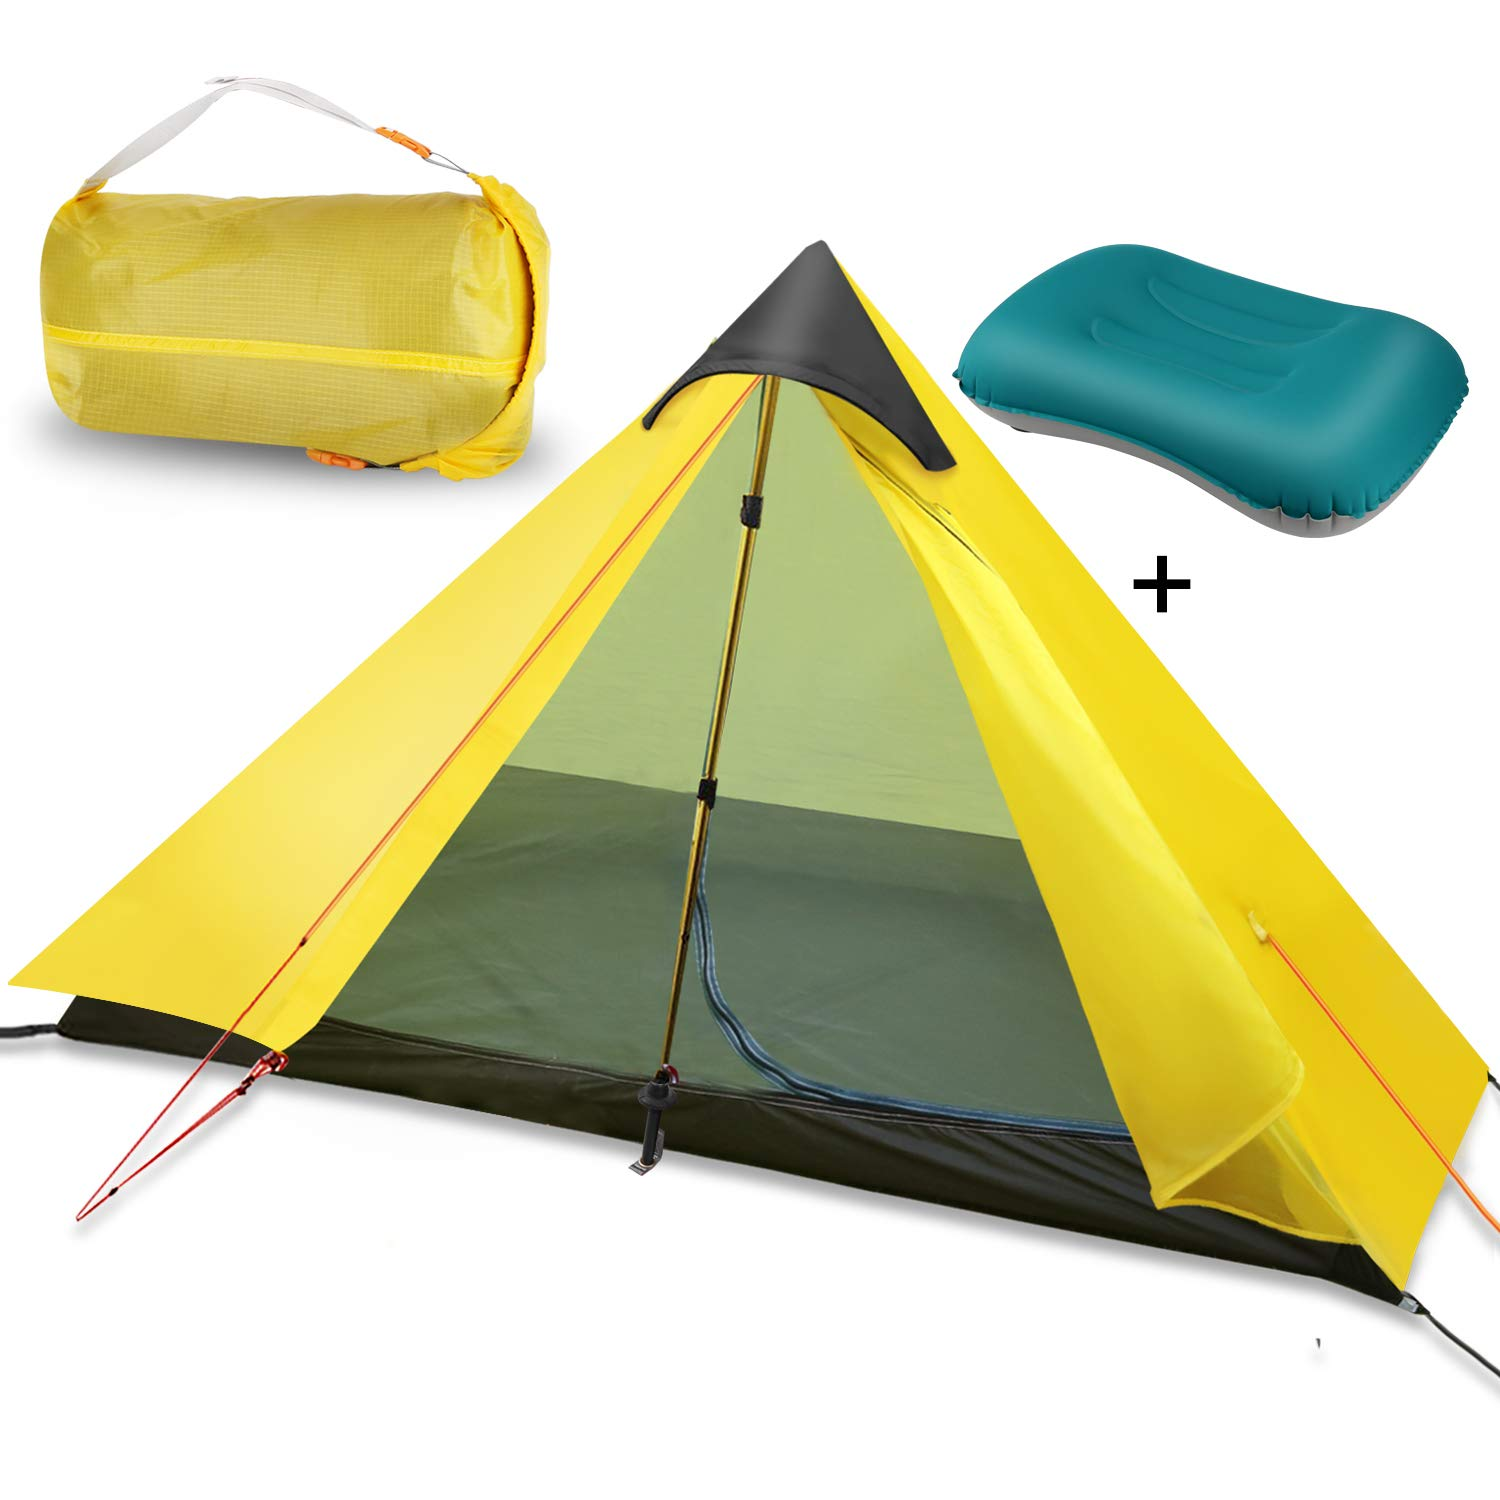 OLUNNA 1-Person Tent Backpacking with 1 Pack Inflatable Camping Pillow, Lightweight Tent Waterproof with Double Layer for Mountaineering, Hiking, Camping, Climbing Trekking Pole is NOT Included